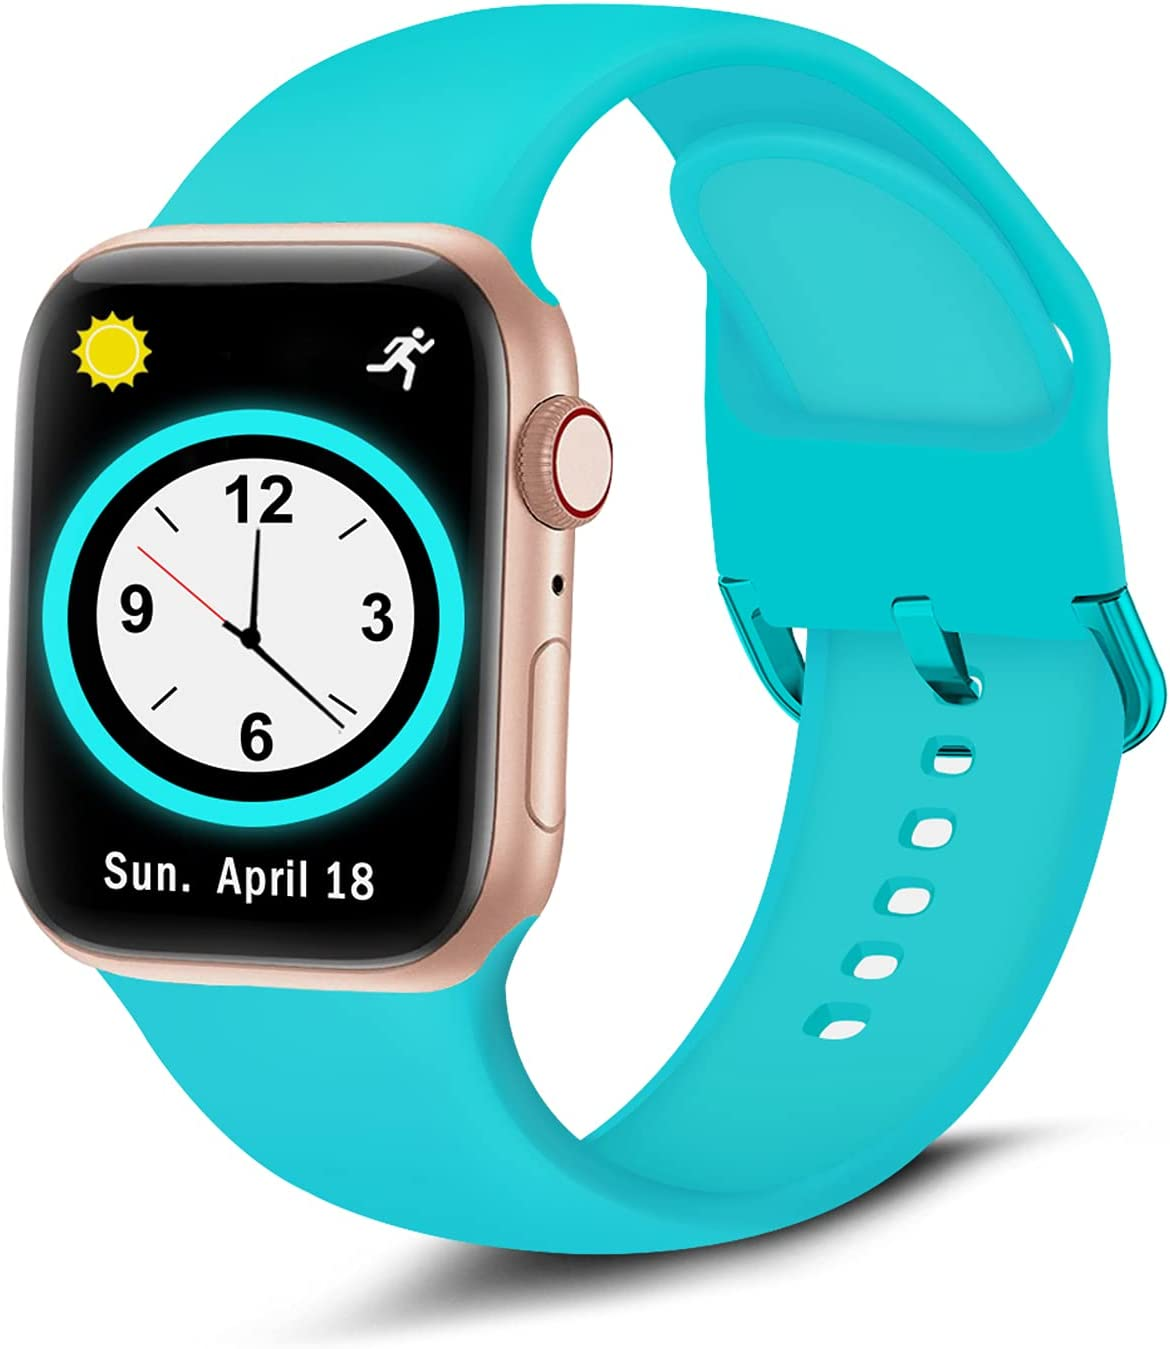 Brigtlaiff Compatible with Apple Watch Bands 38mm 40mm 42mm 44mm, Soft Silicone Sport Replacement Women Men Wristband Strap with Unique Colors Clasp for iWatch Series 6 5 4 3 2 1 SE - 38mm 40mm, Teal